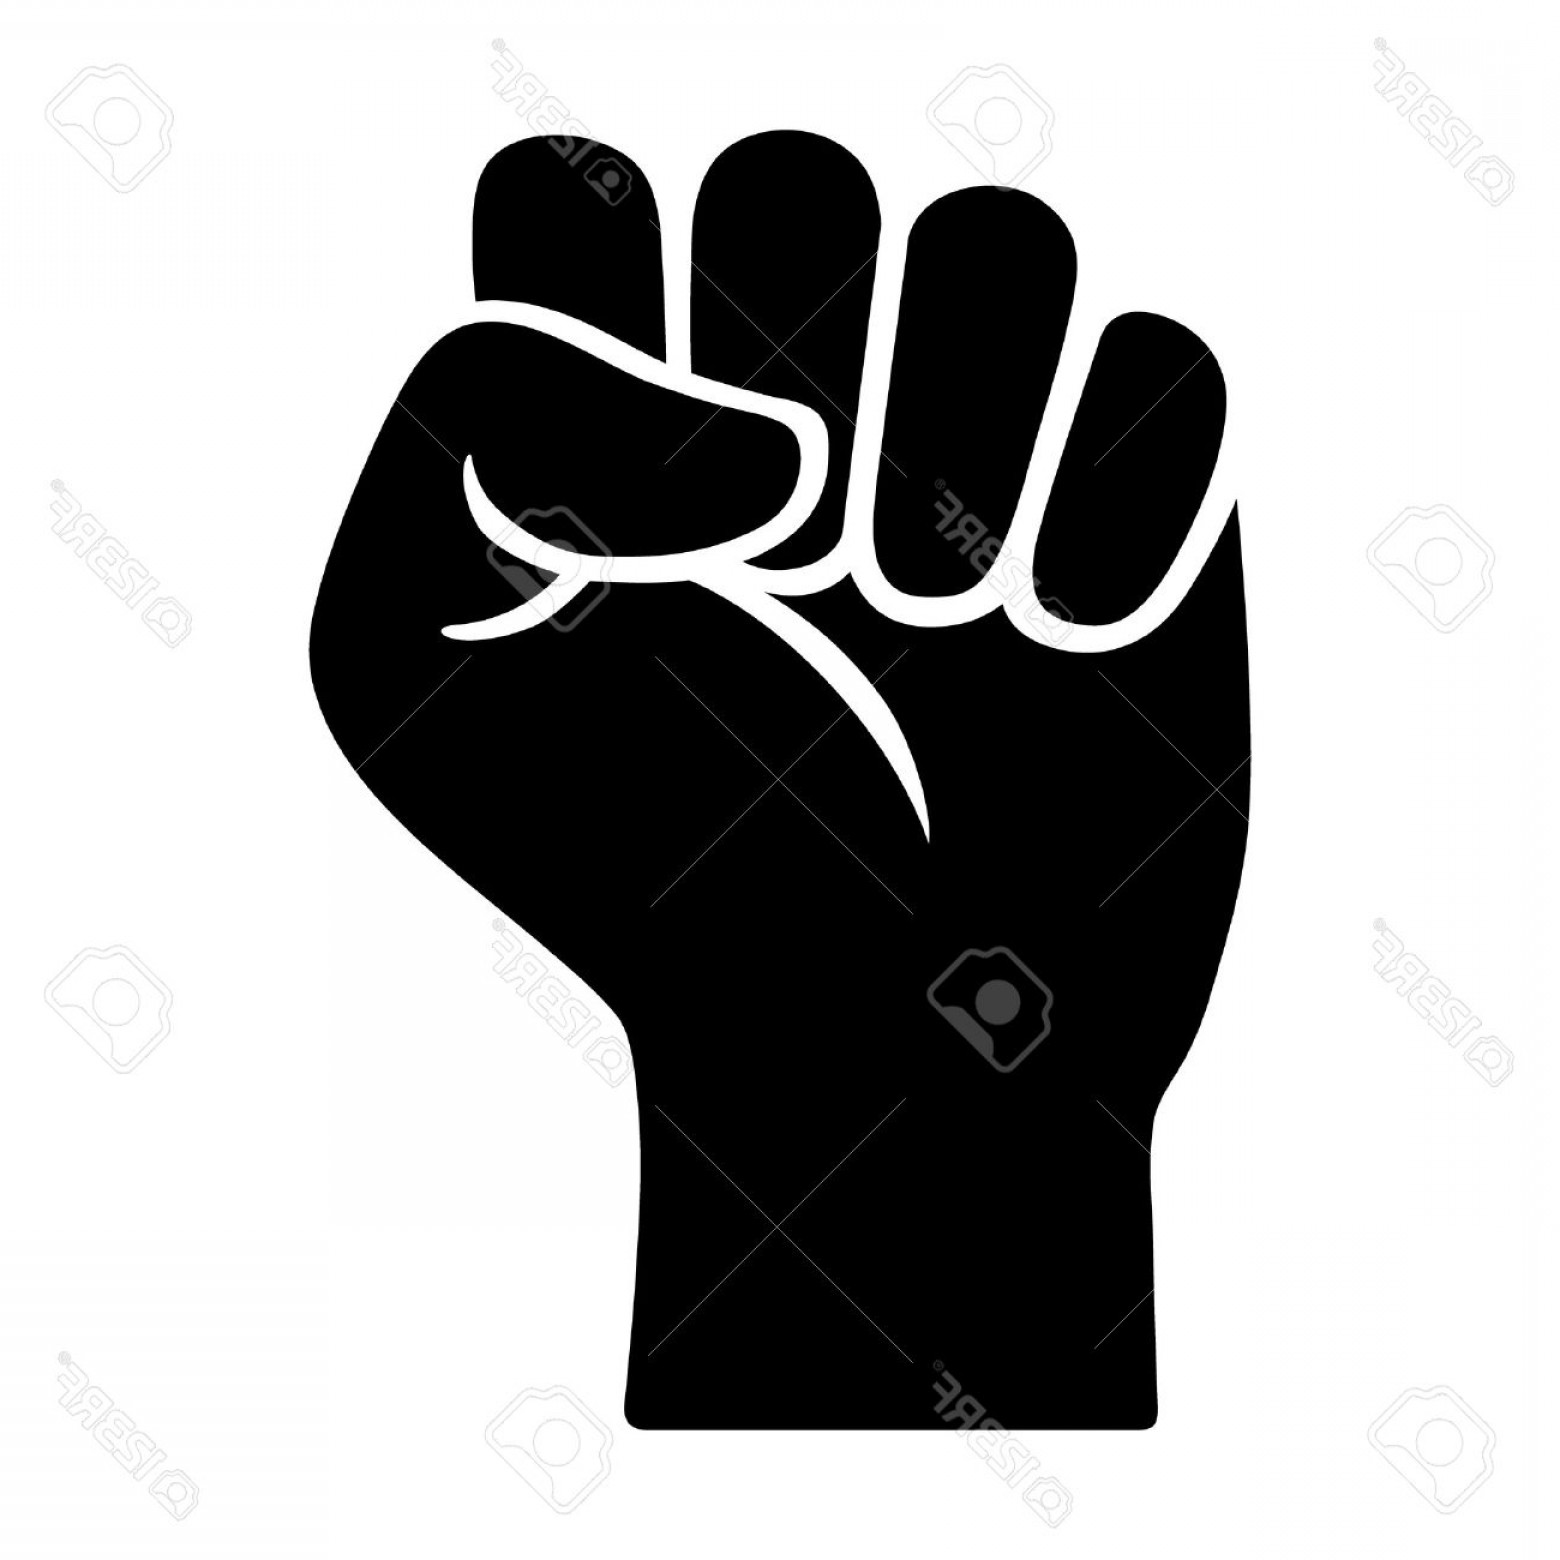 Black Power Fist Vector: Photostock Vector Raised Fist Symbol Of Victory Strength Power And Solidarity Flat Icon For Apps And Websites